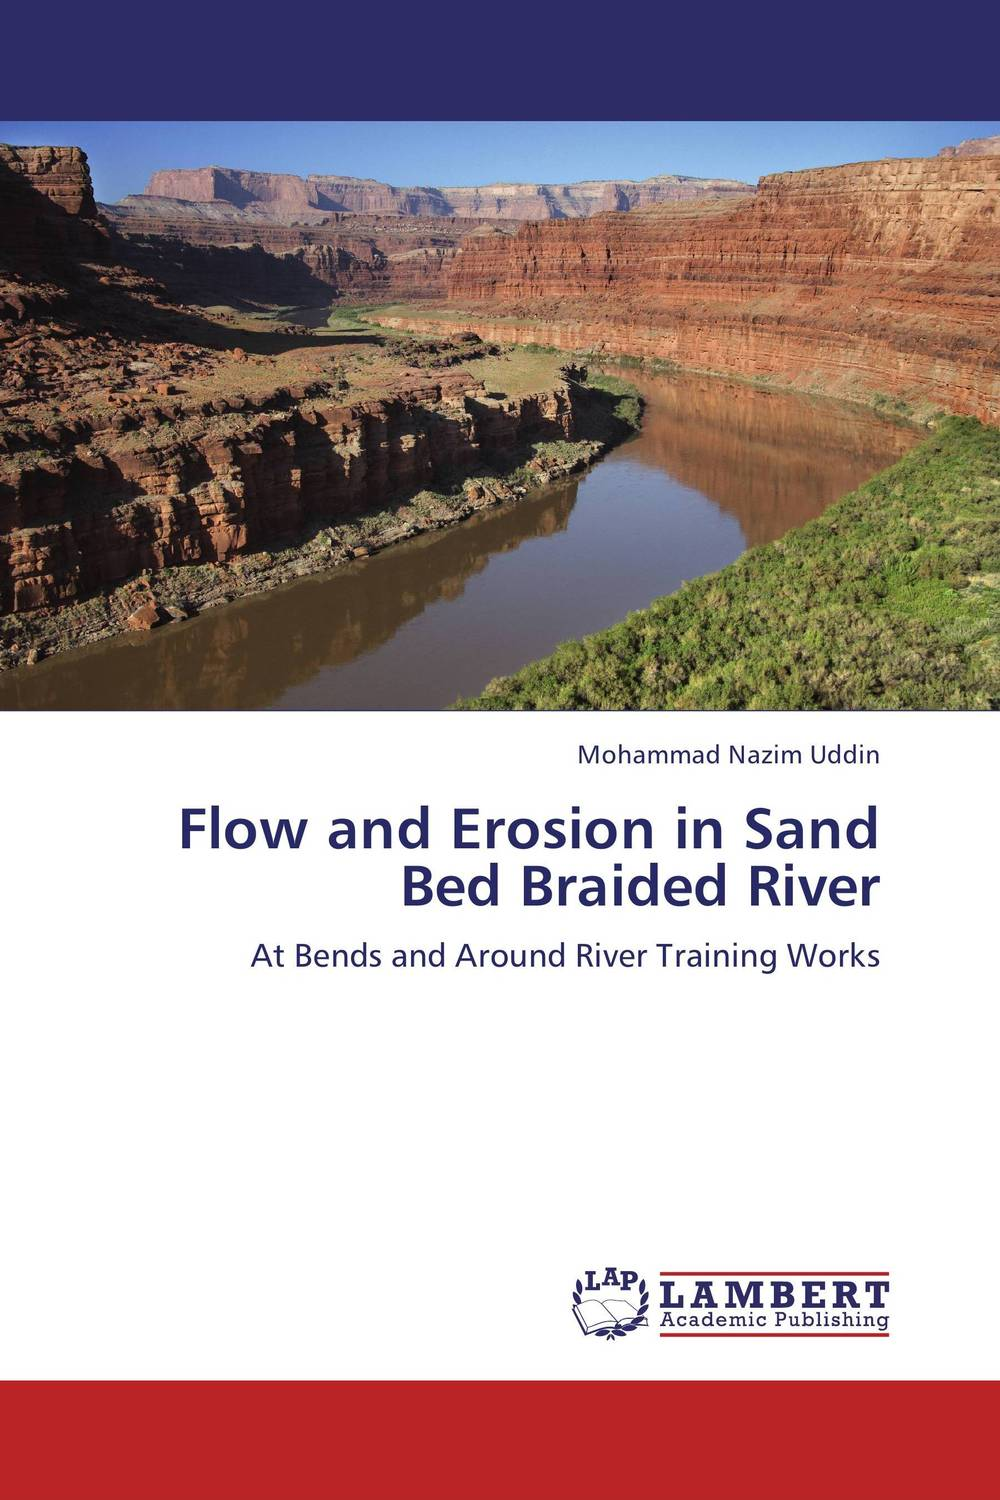 Flow and Erosion in Sand Bed Braided River